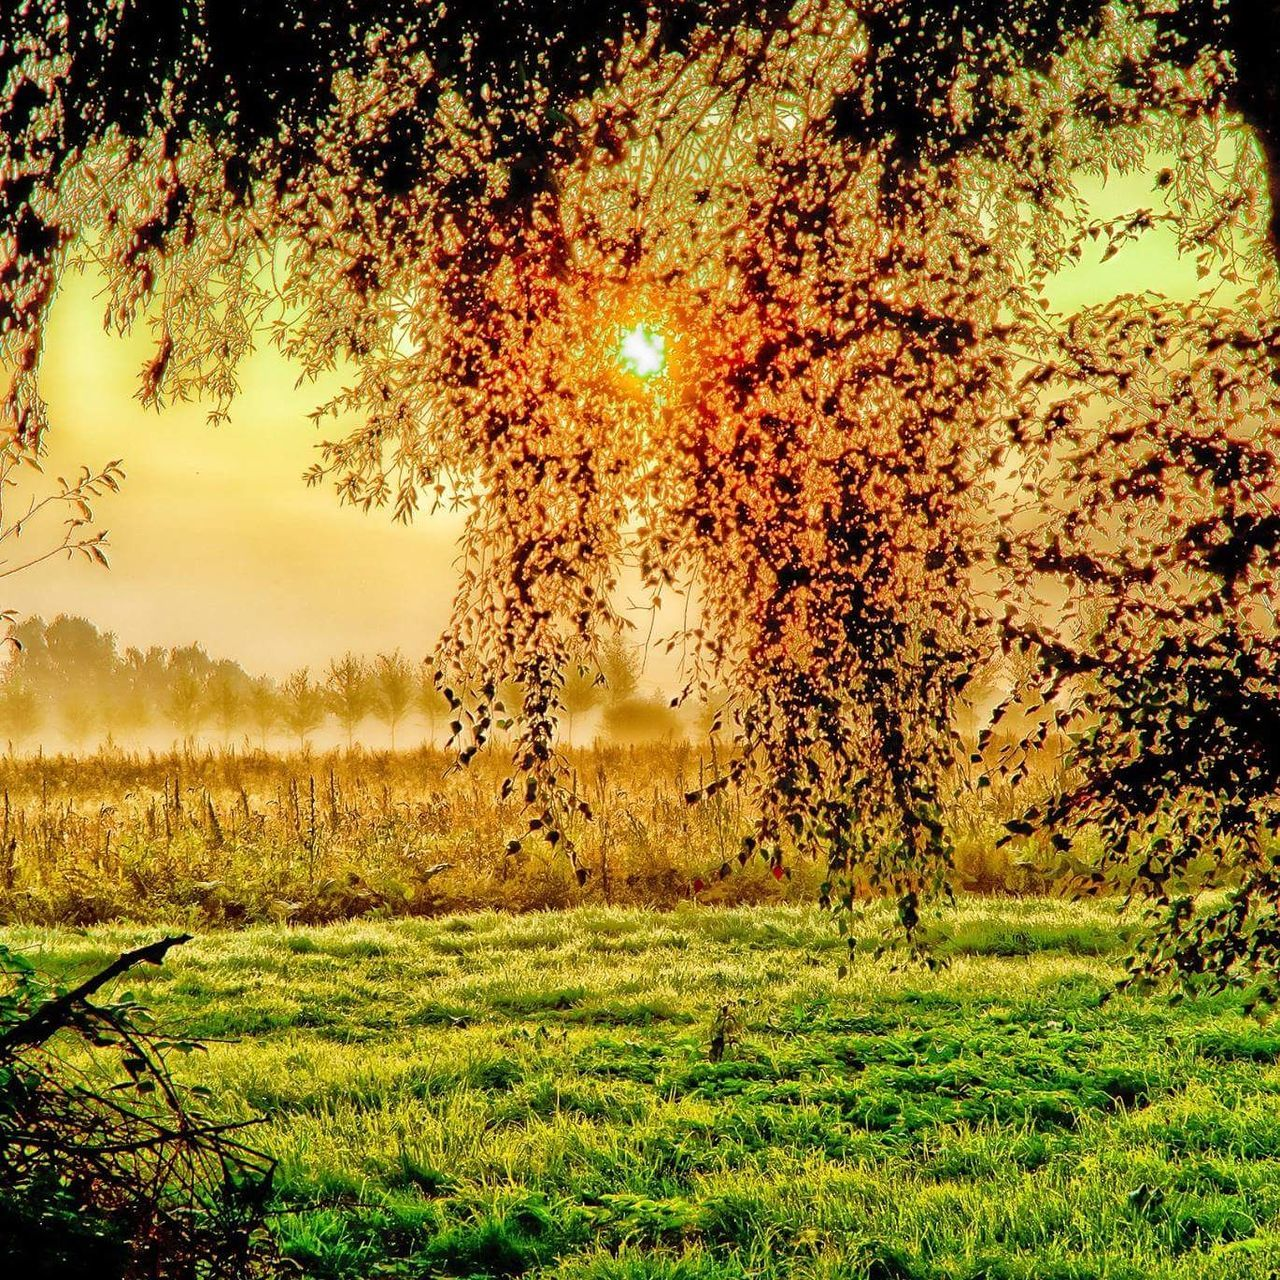 grass, nature, tree, growth, no people, field, beauty in nature, tranquility, outdoors, landscape, sky, day